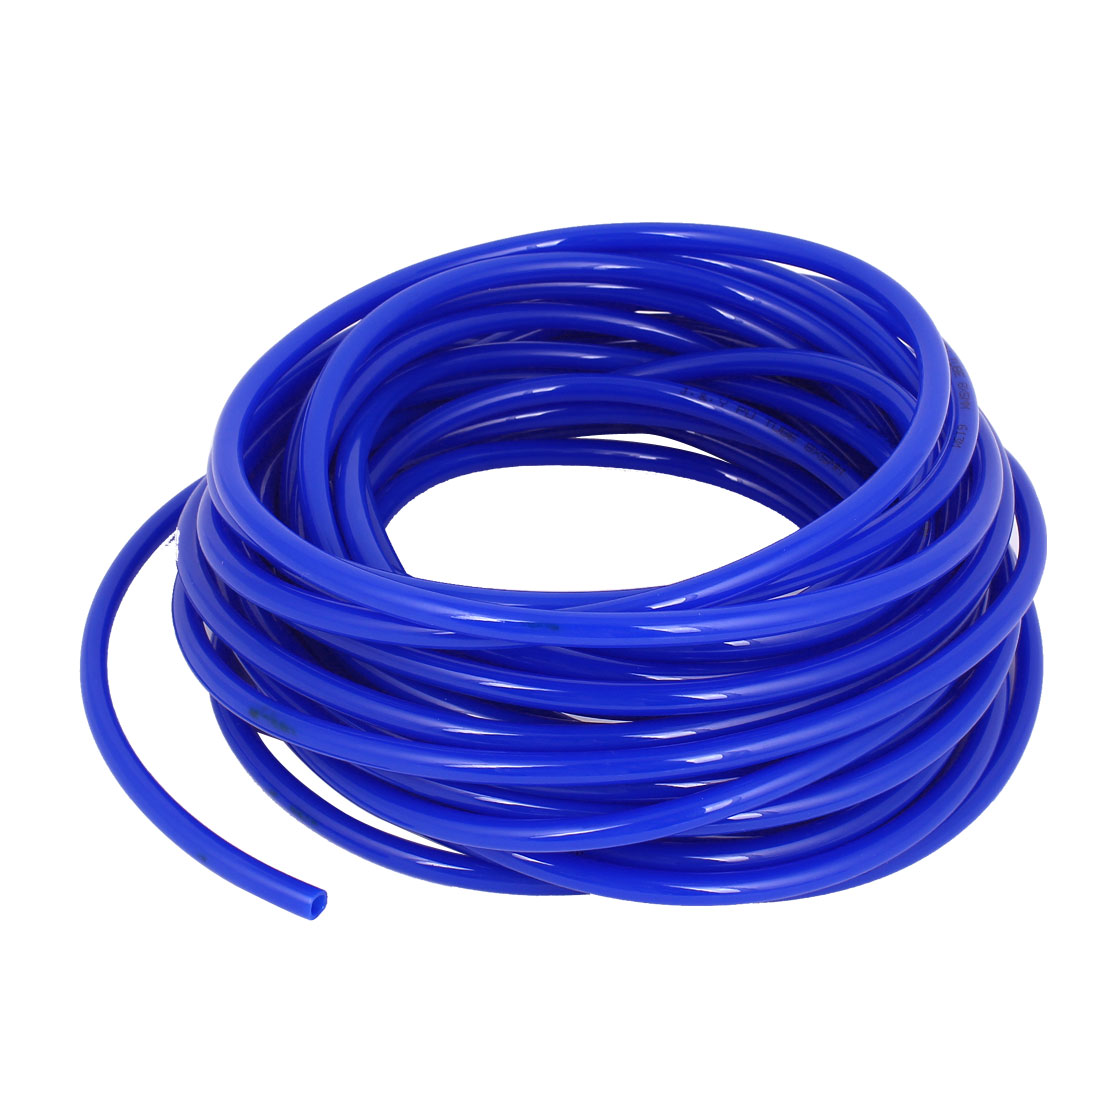 PU Flexible Air Tubing Pneumatic Pipe Tube Hose Blue 8x5mm 1.5mm Thickness 16M